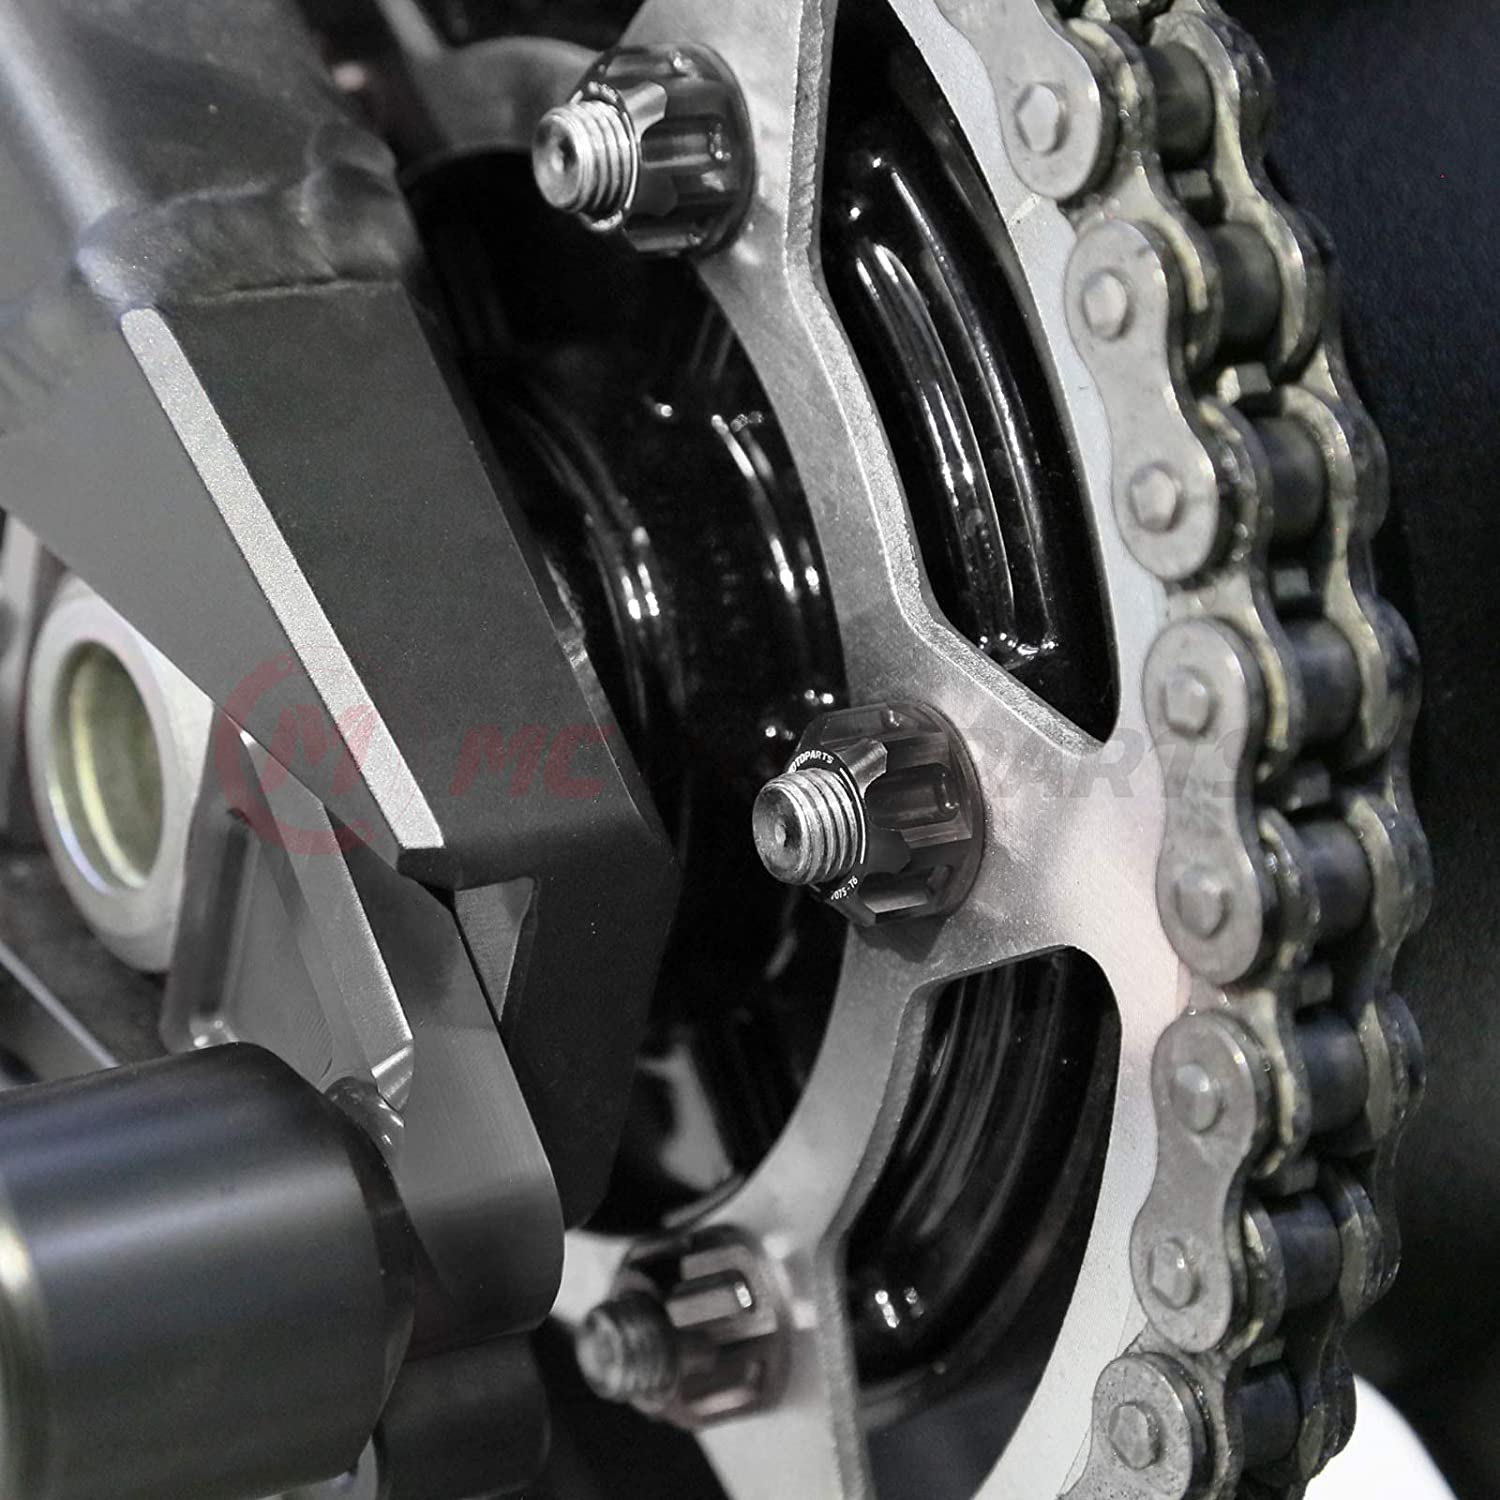 ZX-6R ZZR 1400 ZX-10R ZX-14R Gold MC MOTOPARTS CNC Racing Rear Sprocket Nuts Set For Ninja 400 Ninja 650R